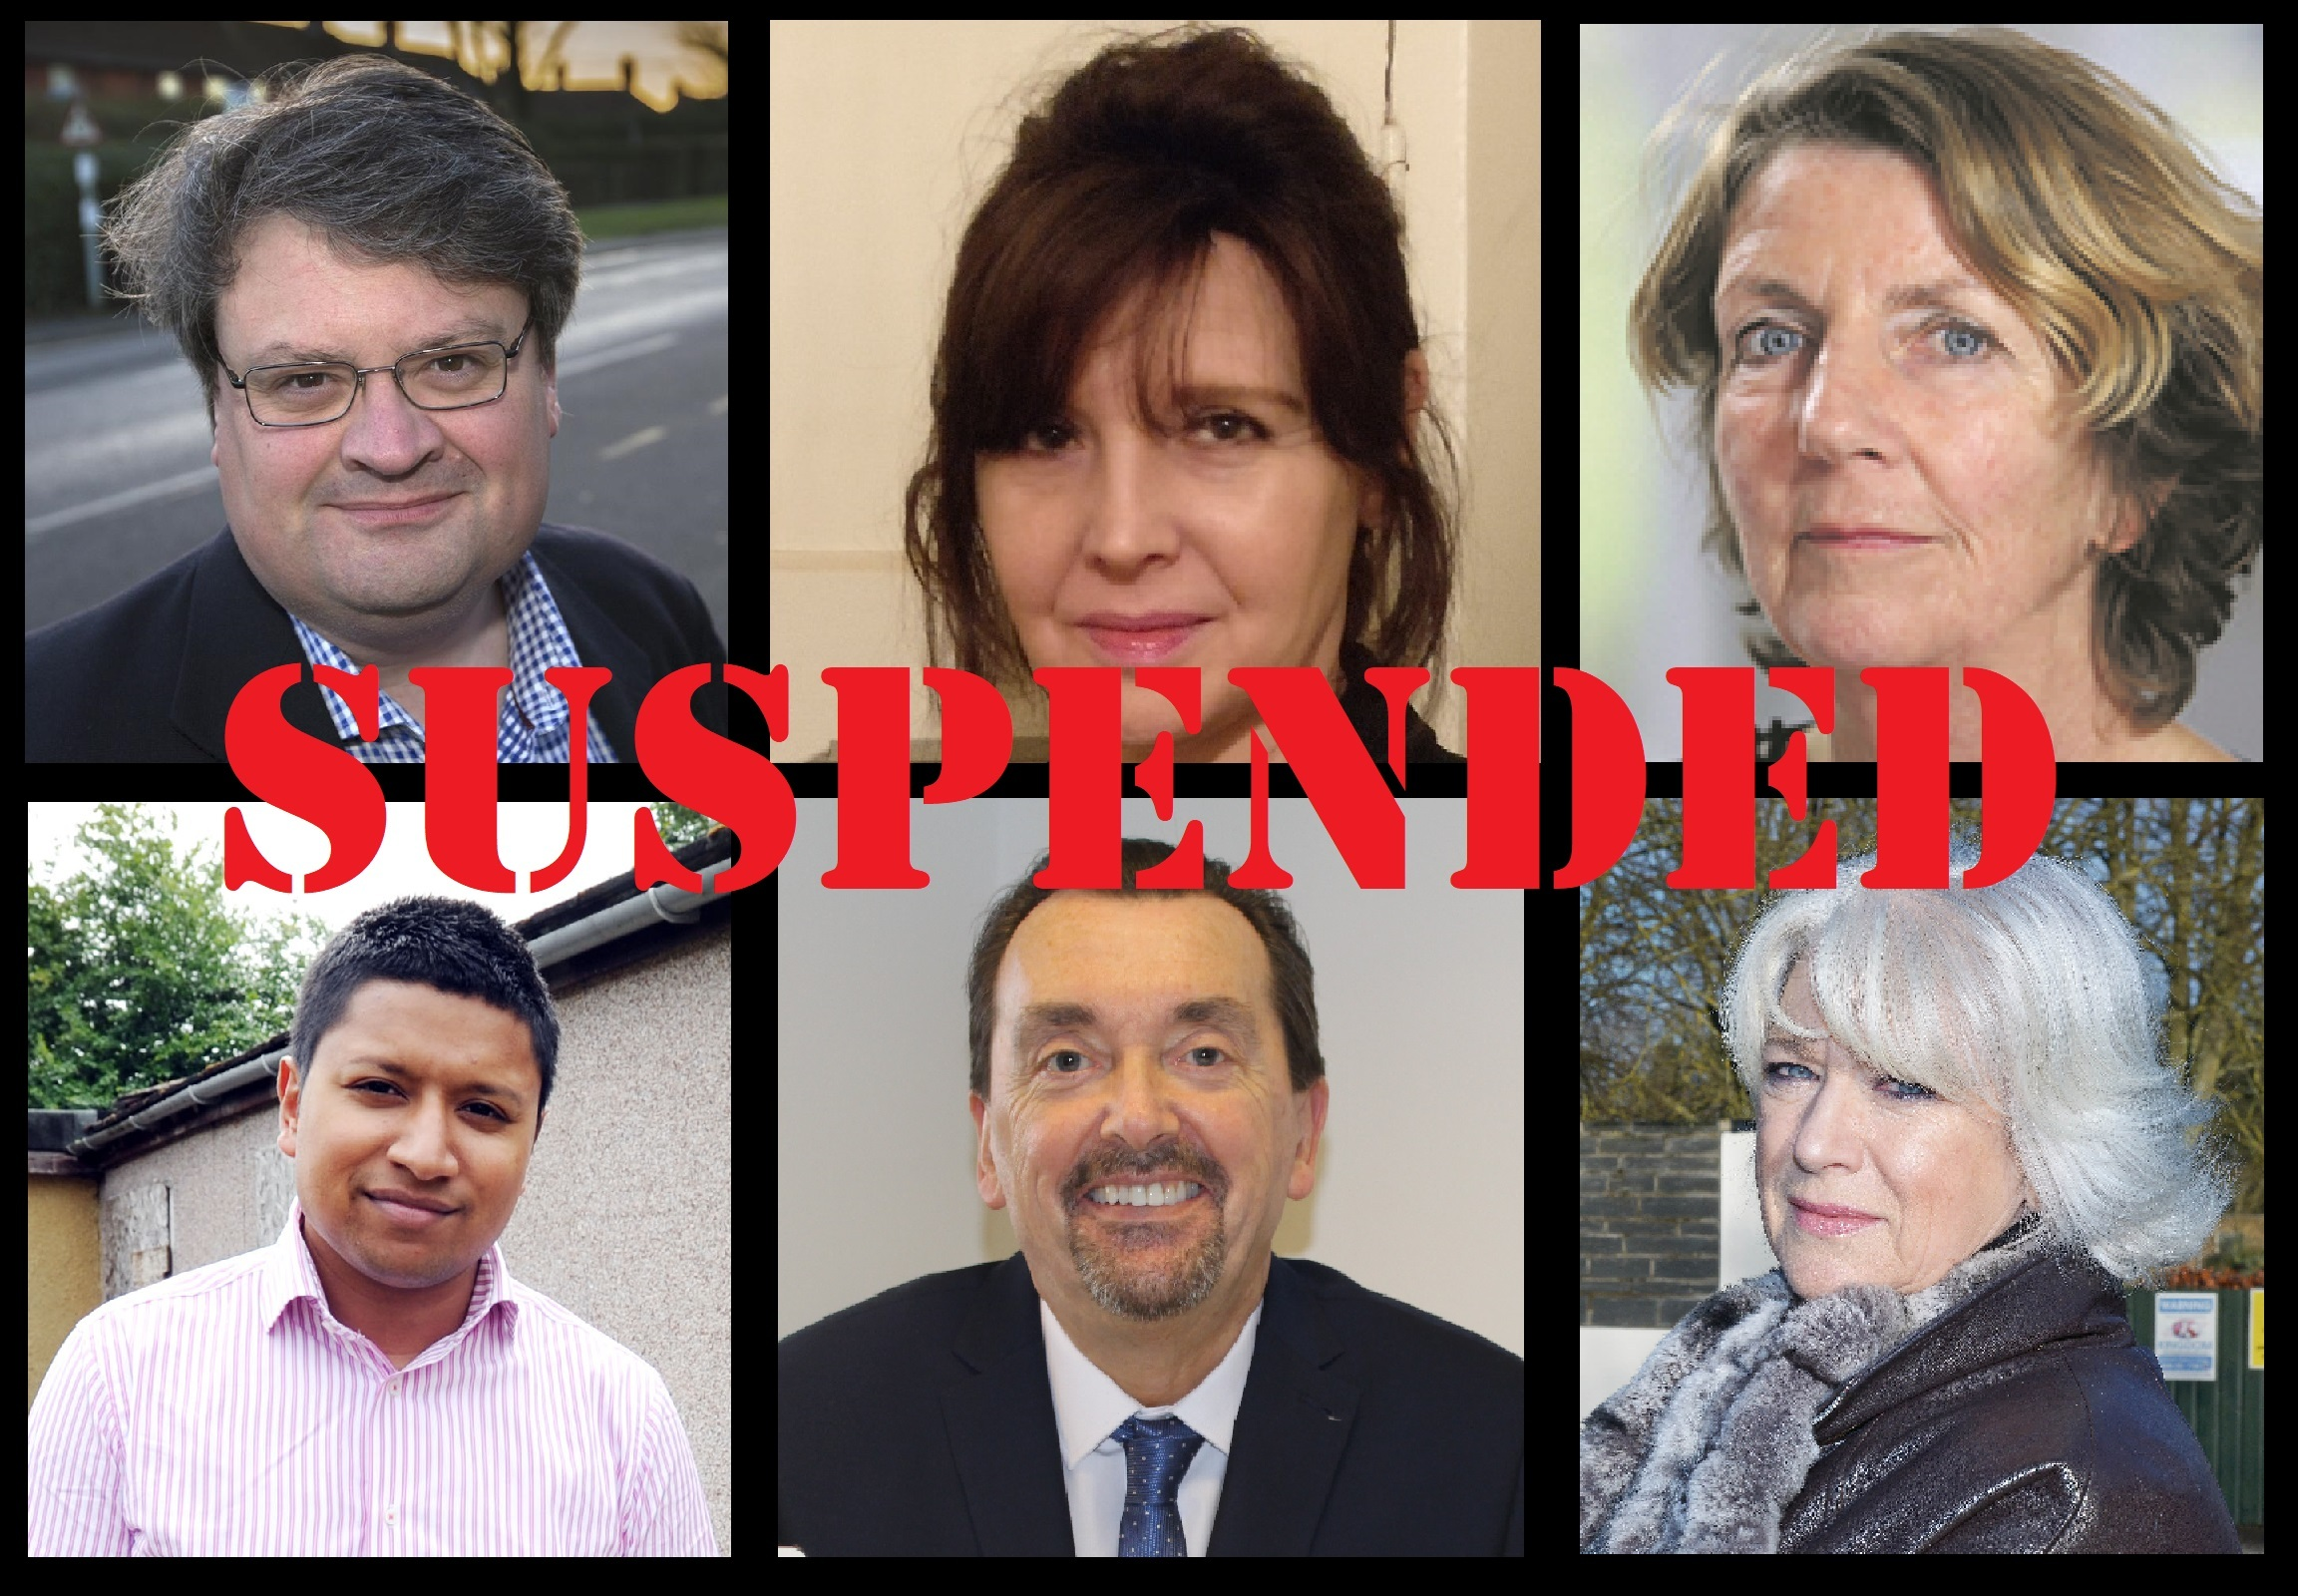 The six South Oxfordshire District Councillors suspended by the district Conservative group in January 2019. Clockwise from top left, John Cotton, Sue Lawson, Elizabeth Gillespie, Elaine Hornsby, Tony Harbour and Imran Lokhon. Picture: Oxford Mail/ SODC/